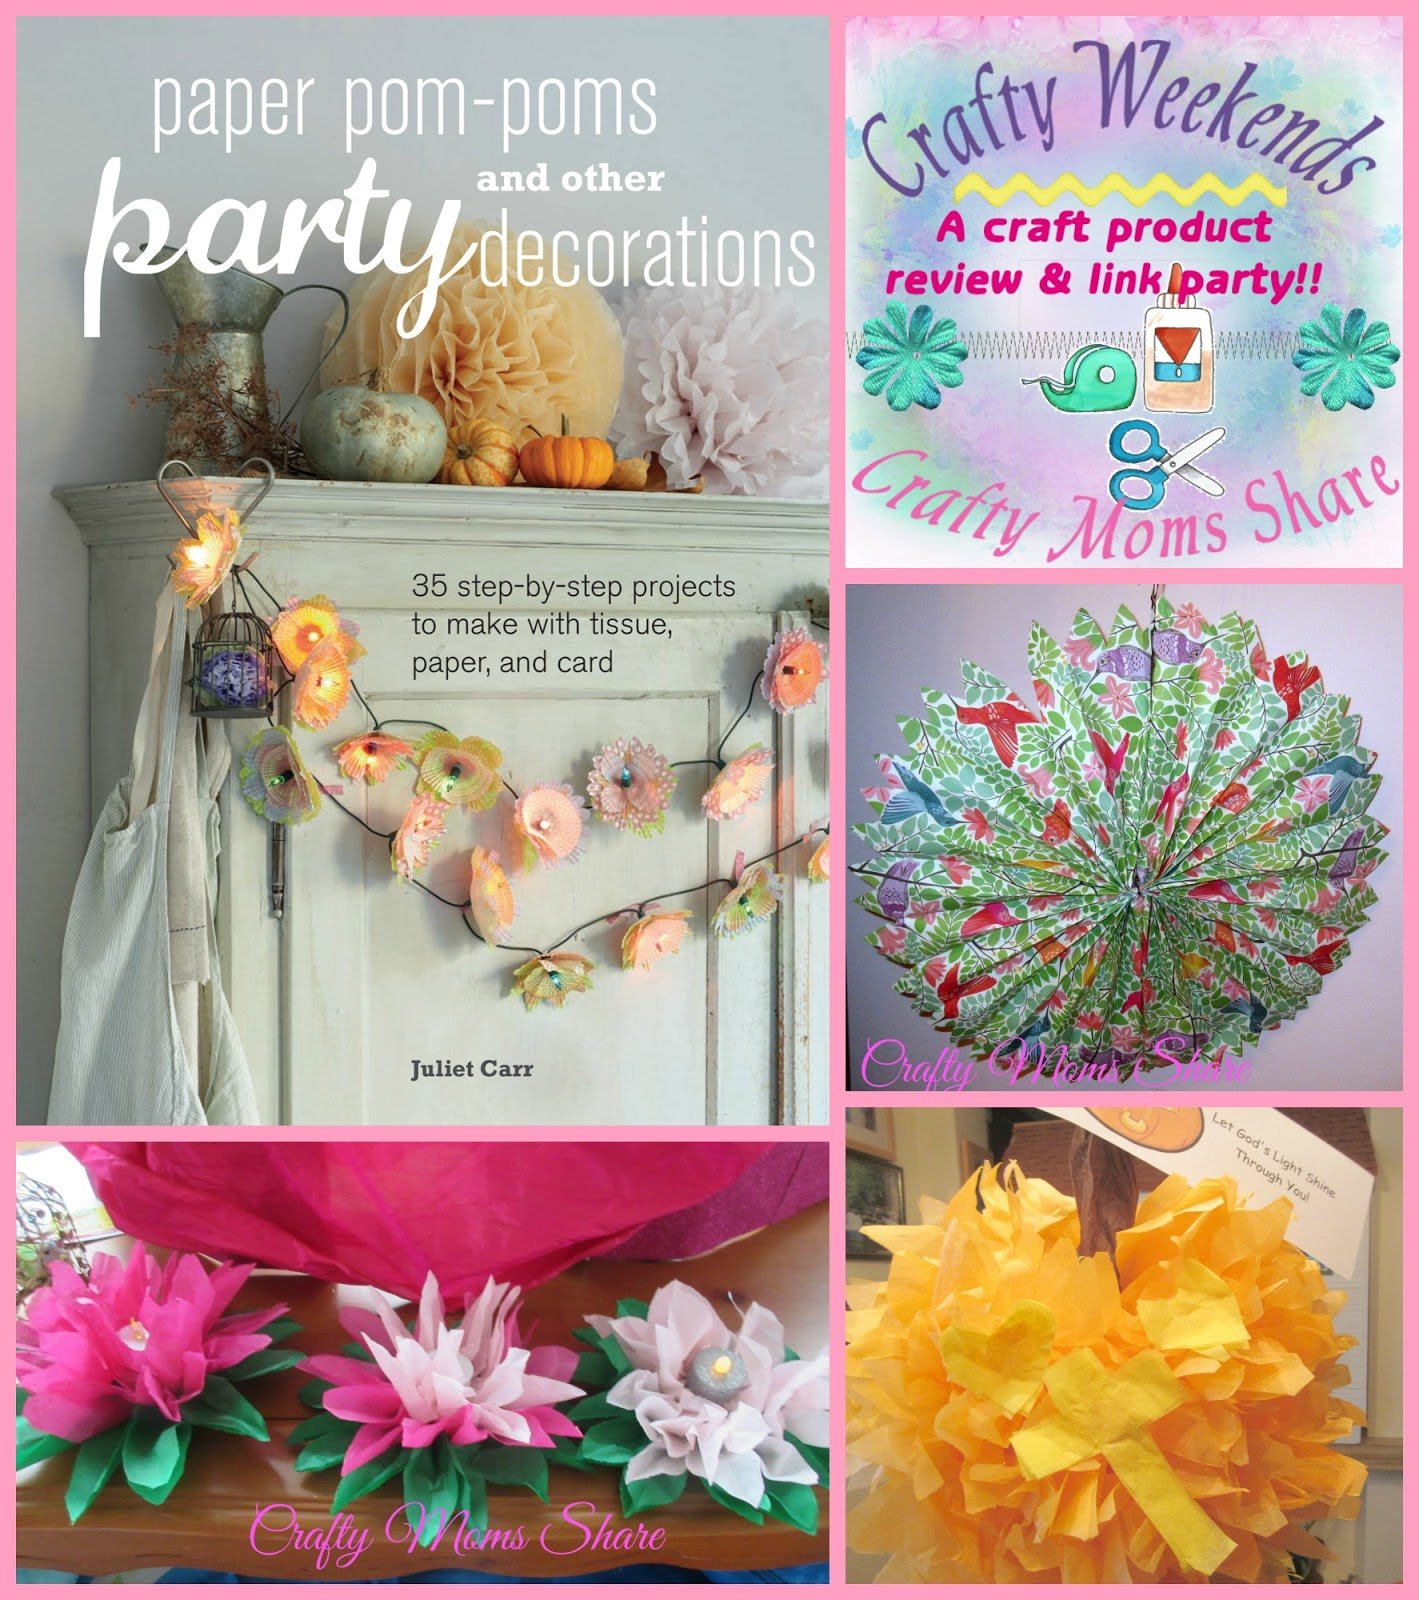 Crafty Weekends: Paper Pom Poms U0026 Other Party Decorations Book Review U0026  Link Party